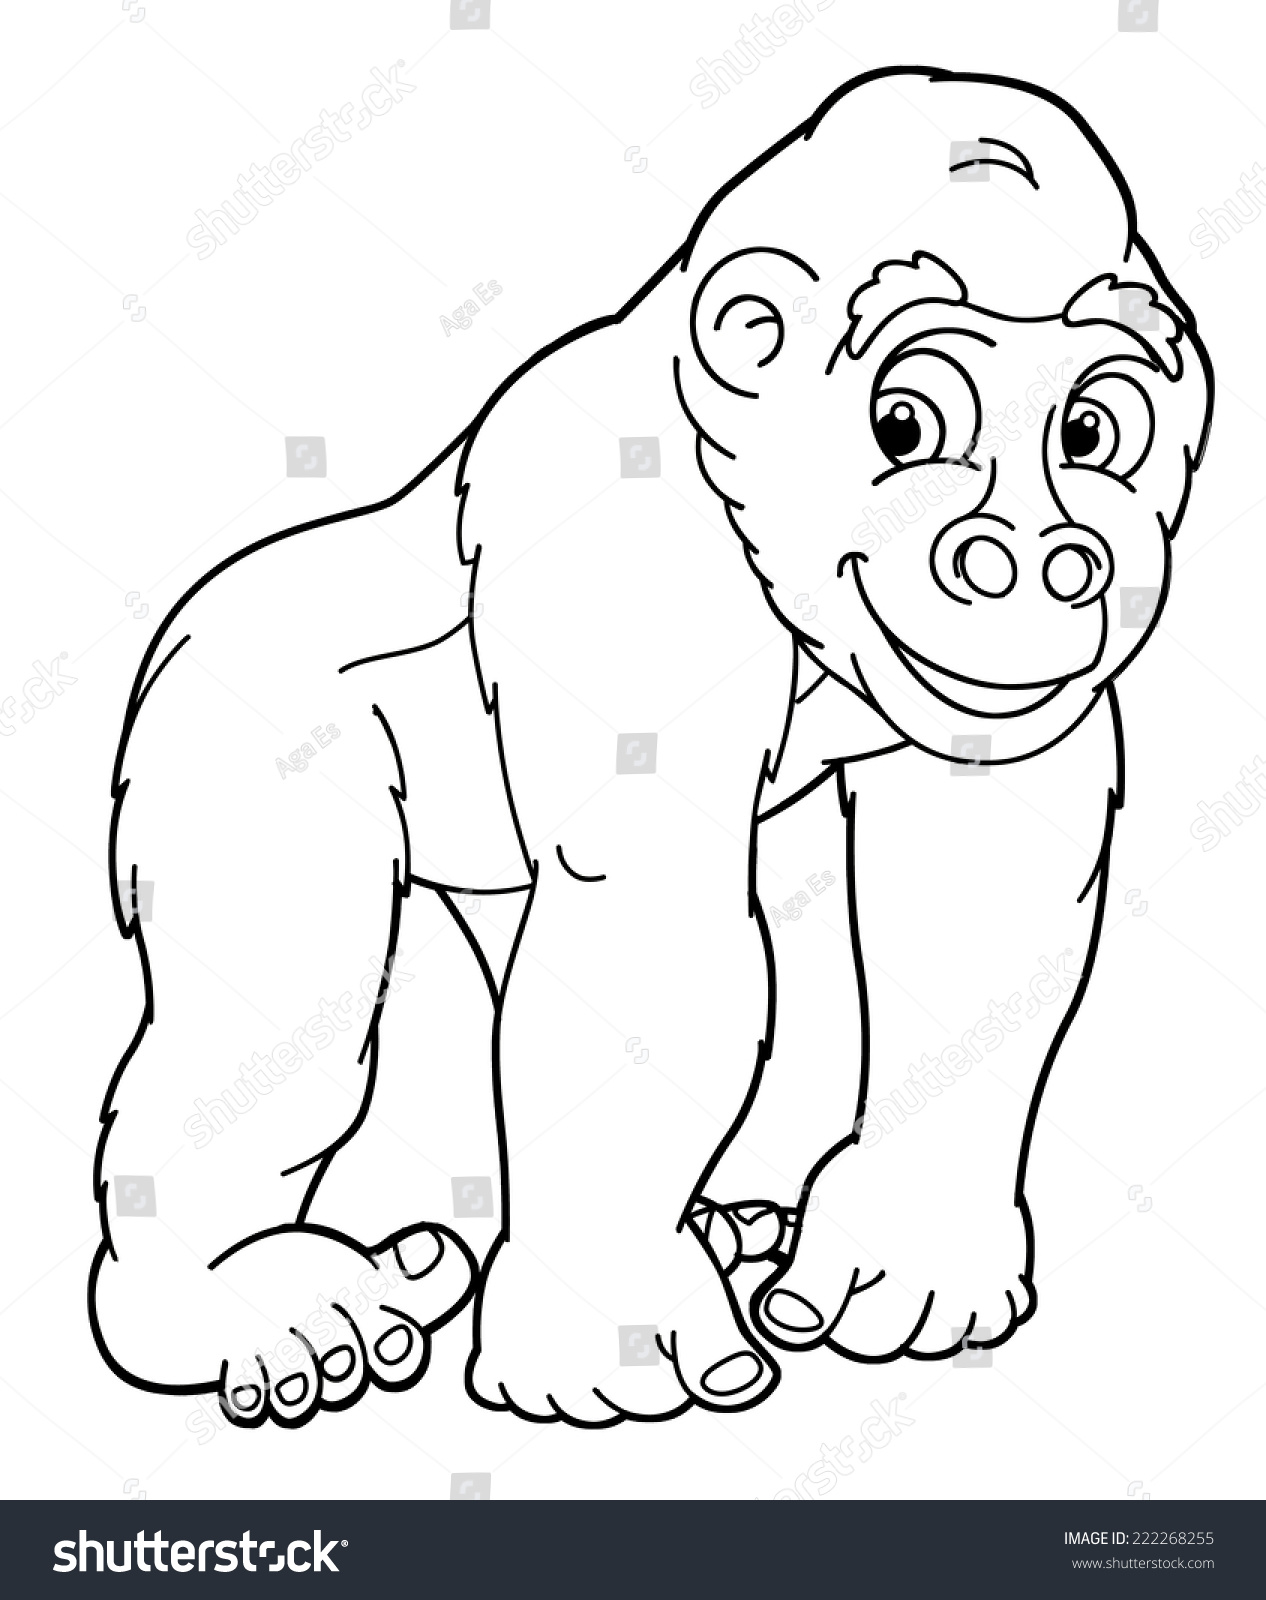 Coloring sheet gorilla - Cartoon Animal Gorilla Caricature Coloring Page Illustration For The Children